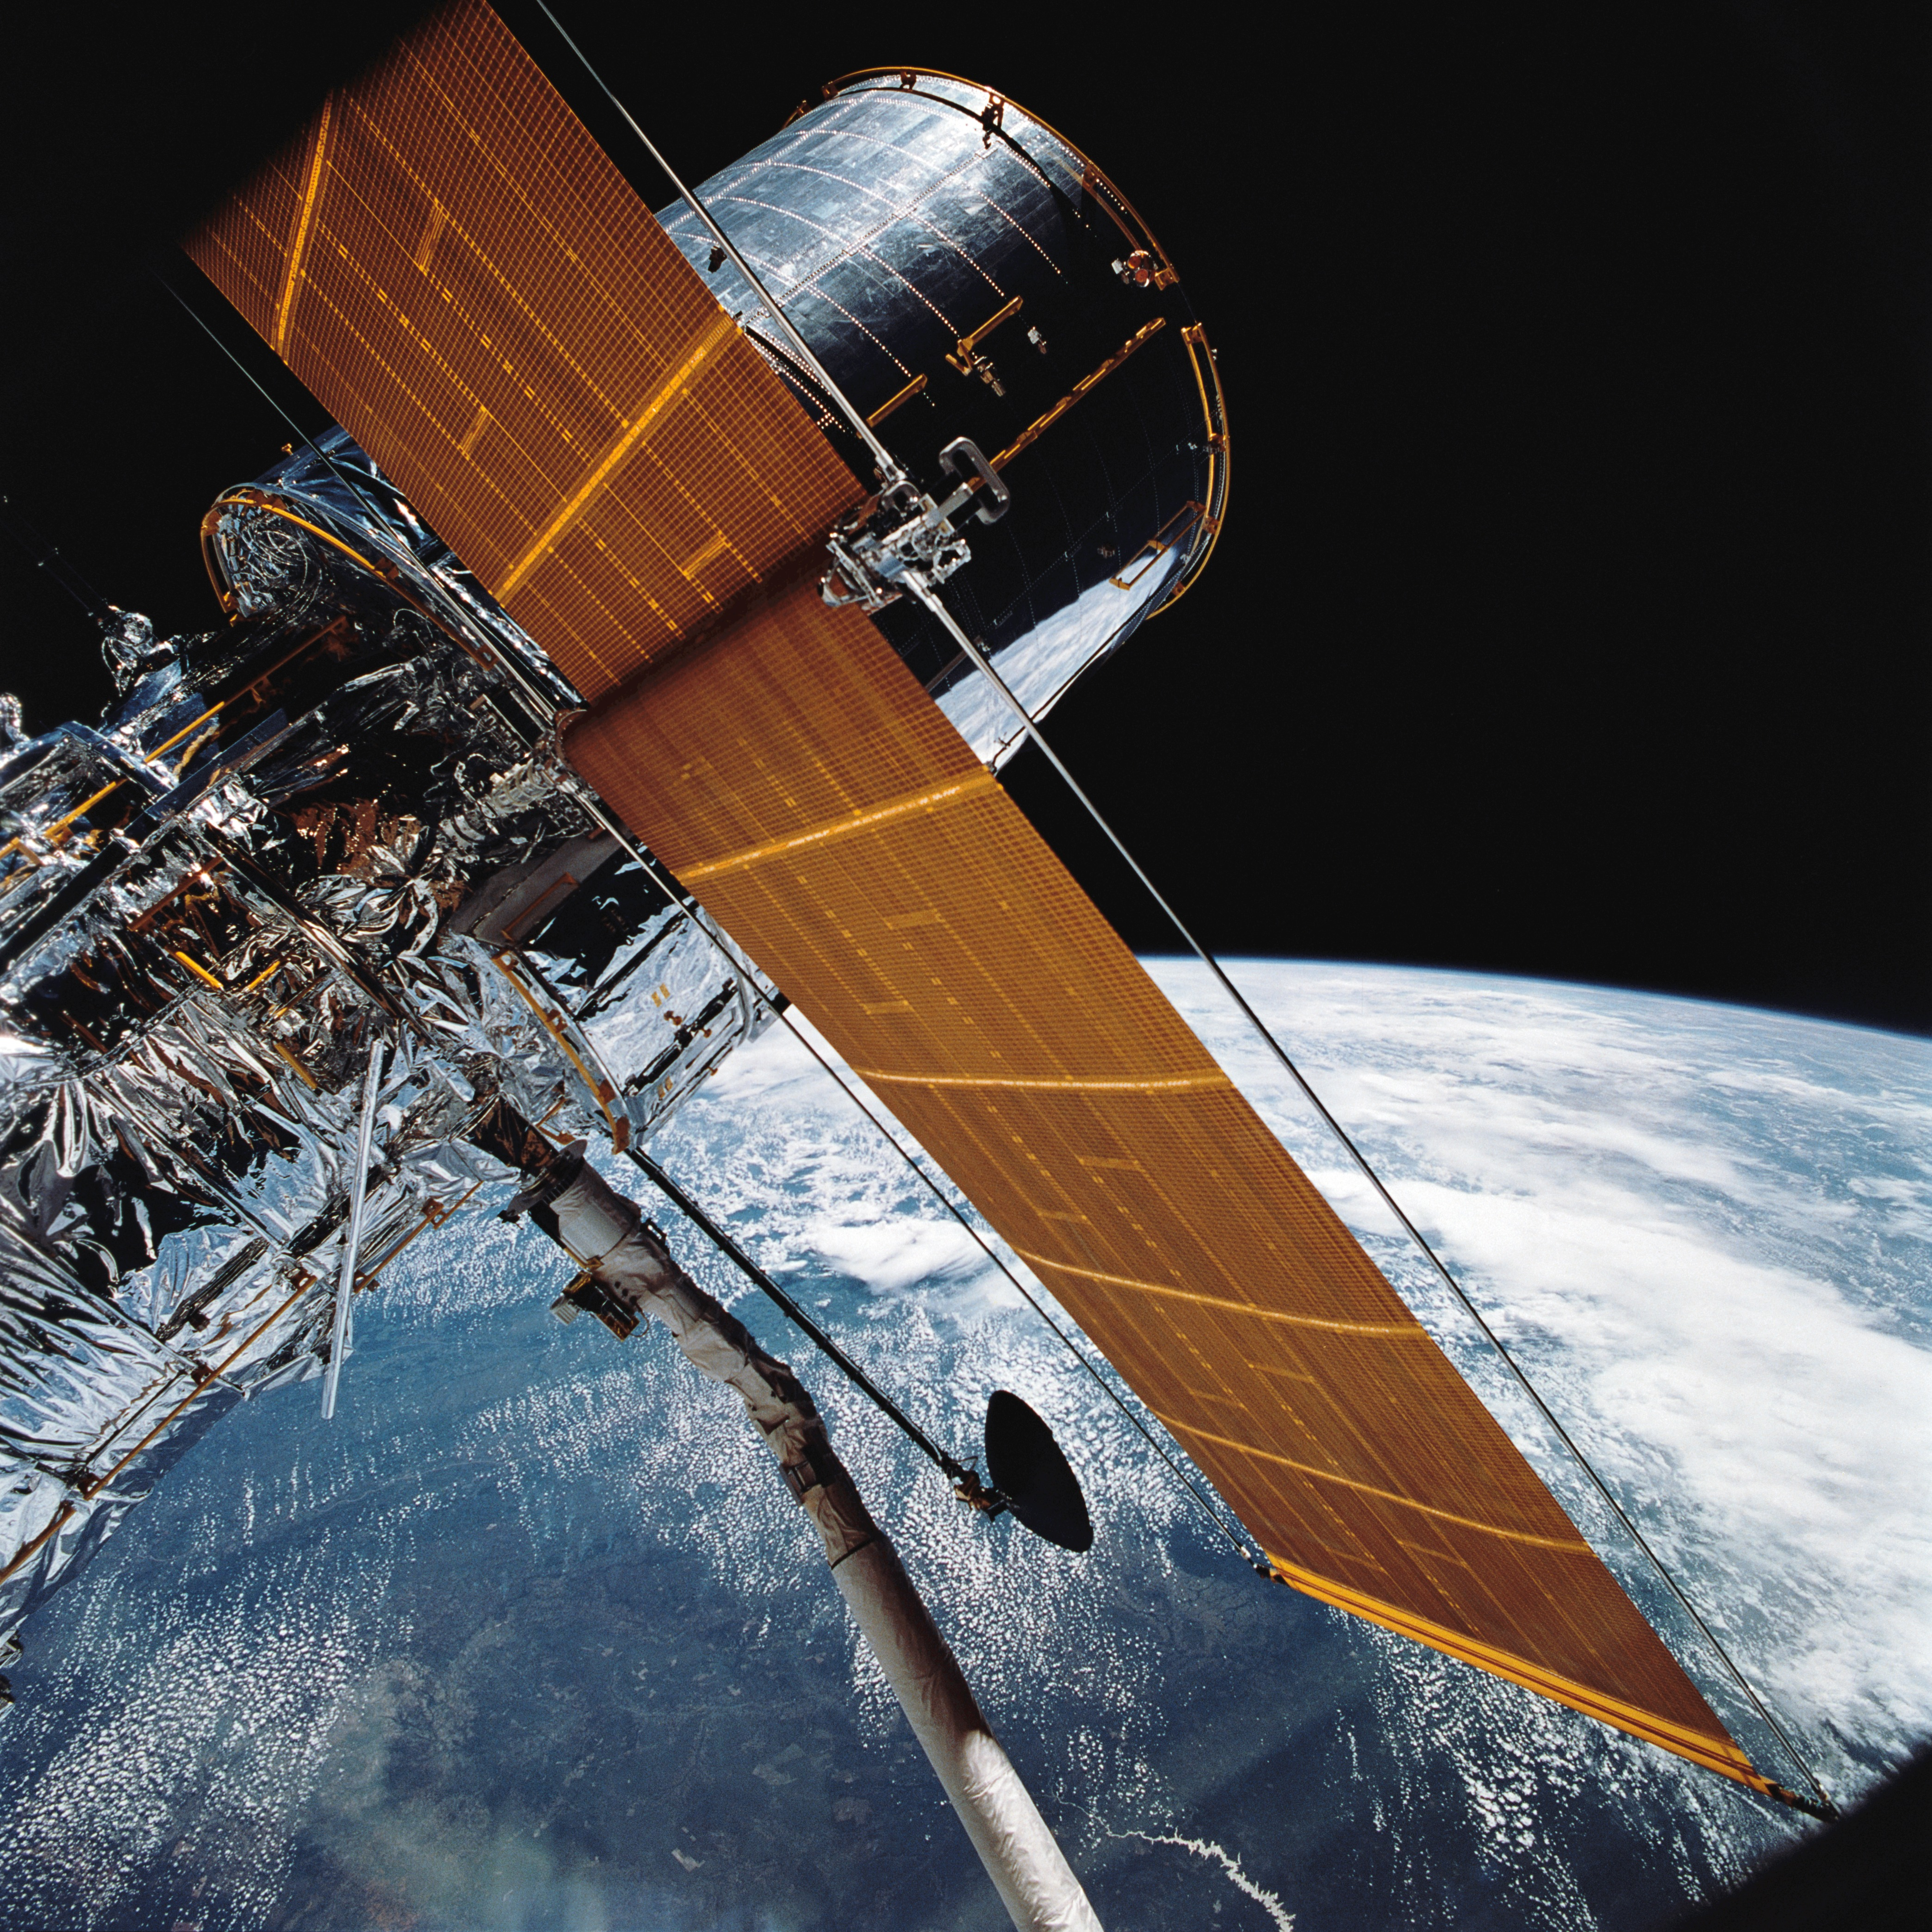 After 25 years, Hubble Space Telescope has proved not to be a 'techno-turkey'